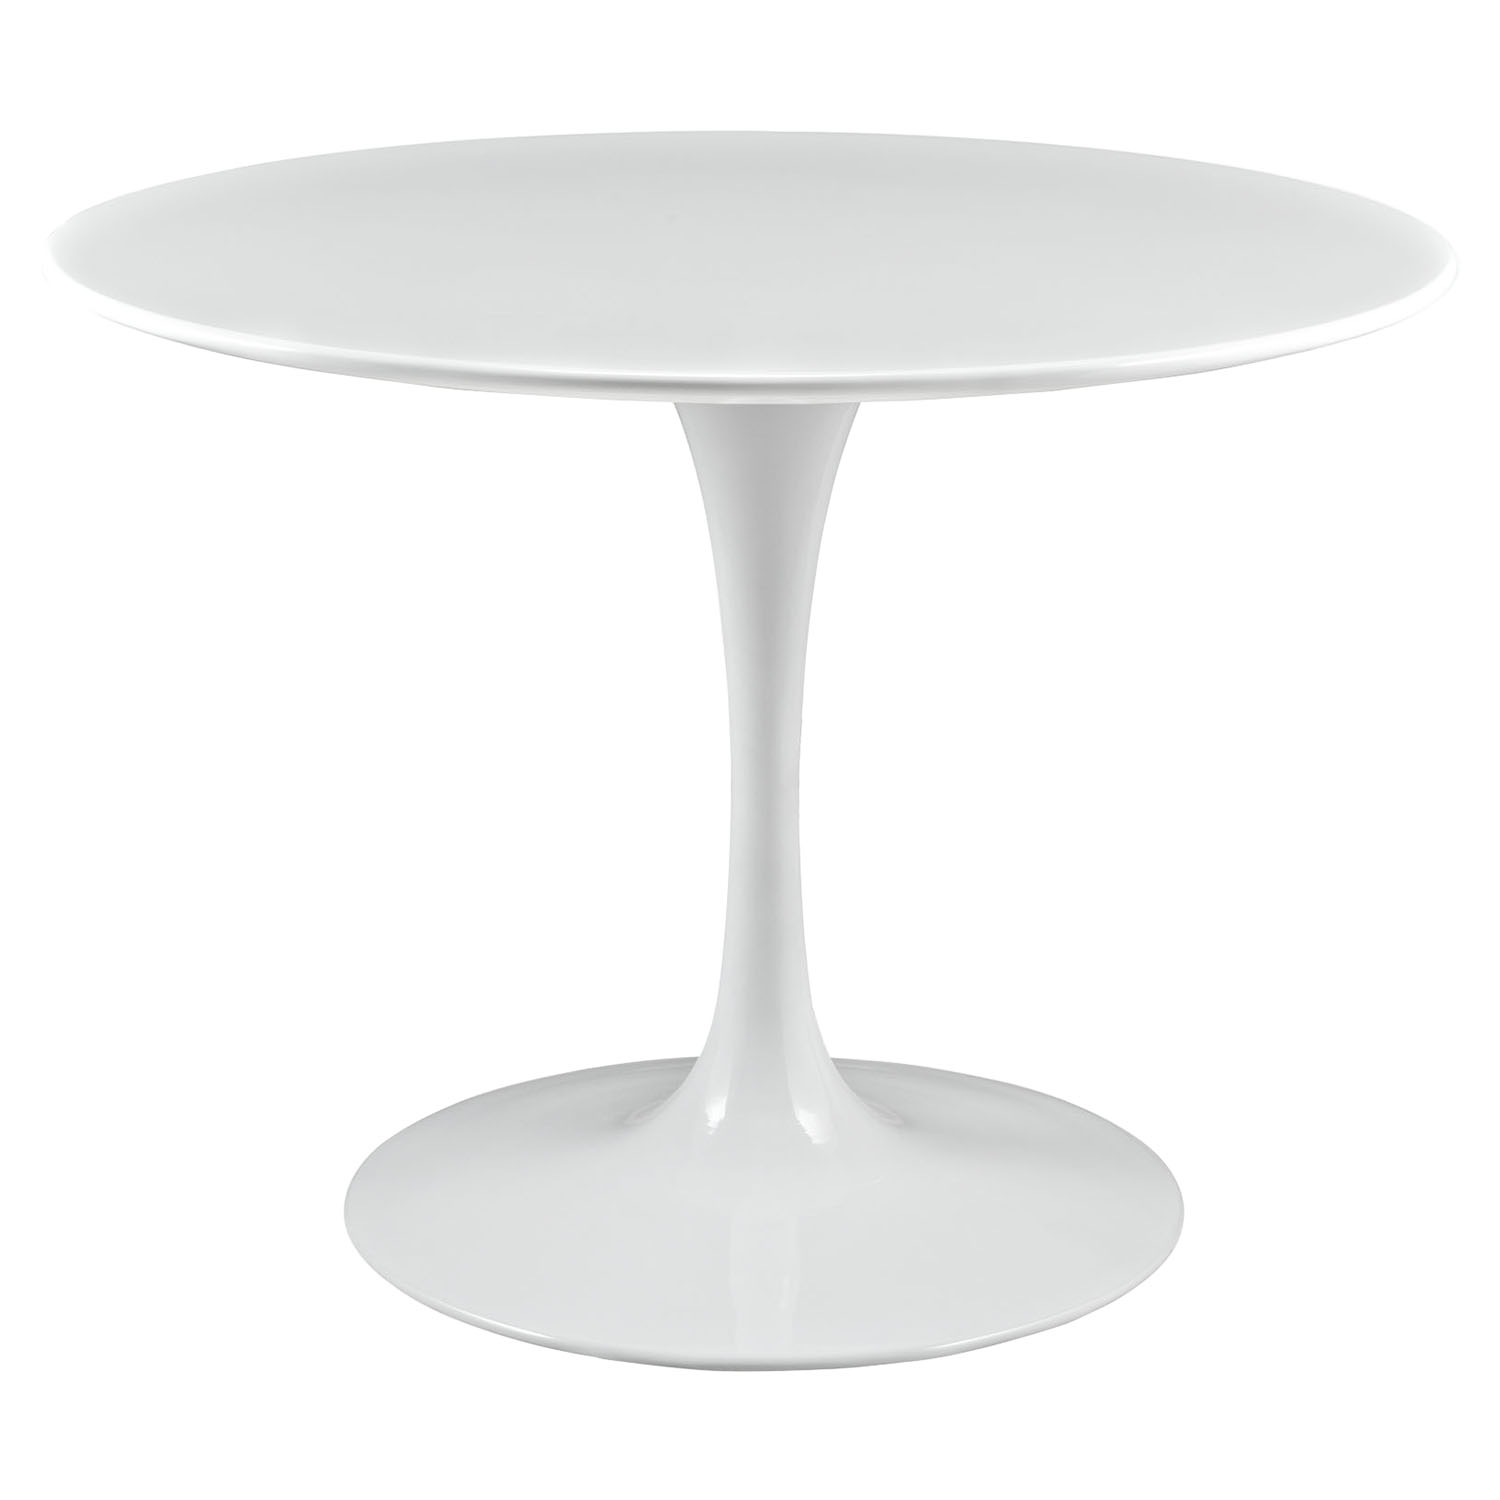 "Lippa 40"" Wood Top Dining Table - White - EEI-1117-WHI"